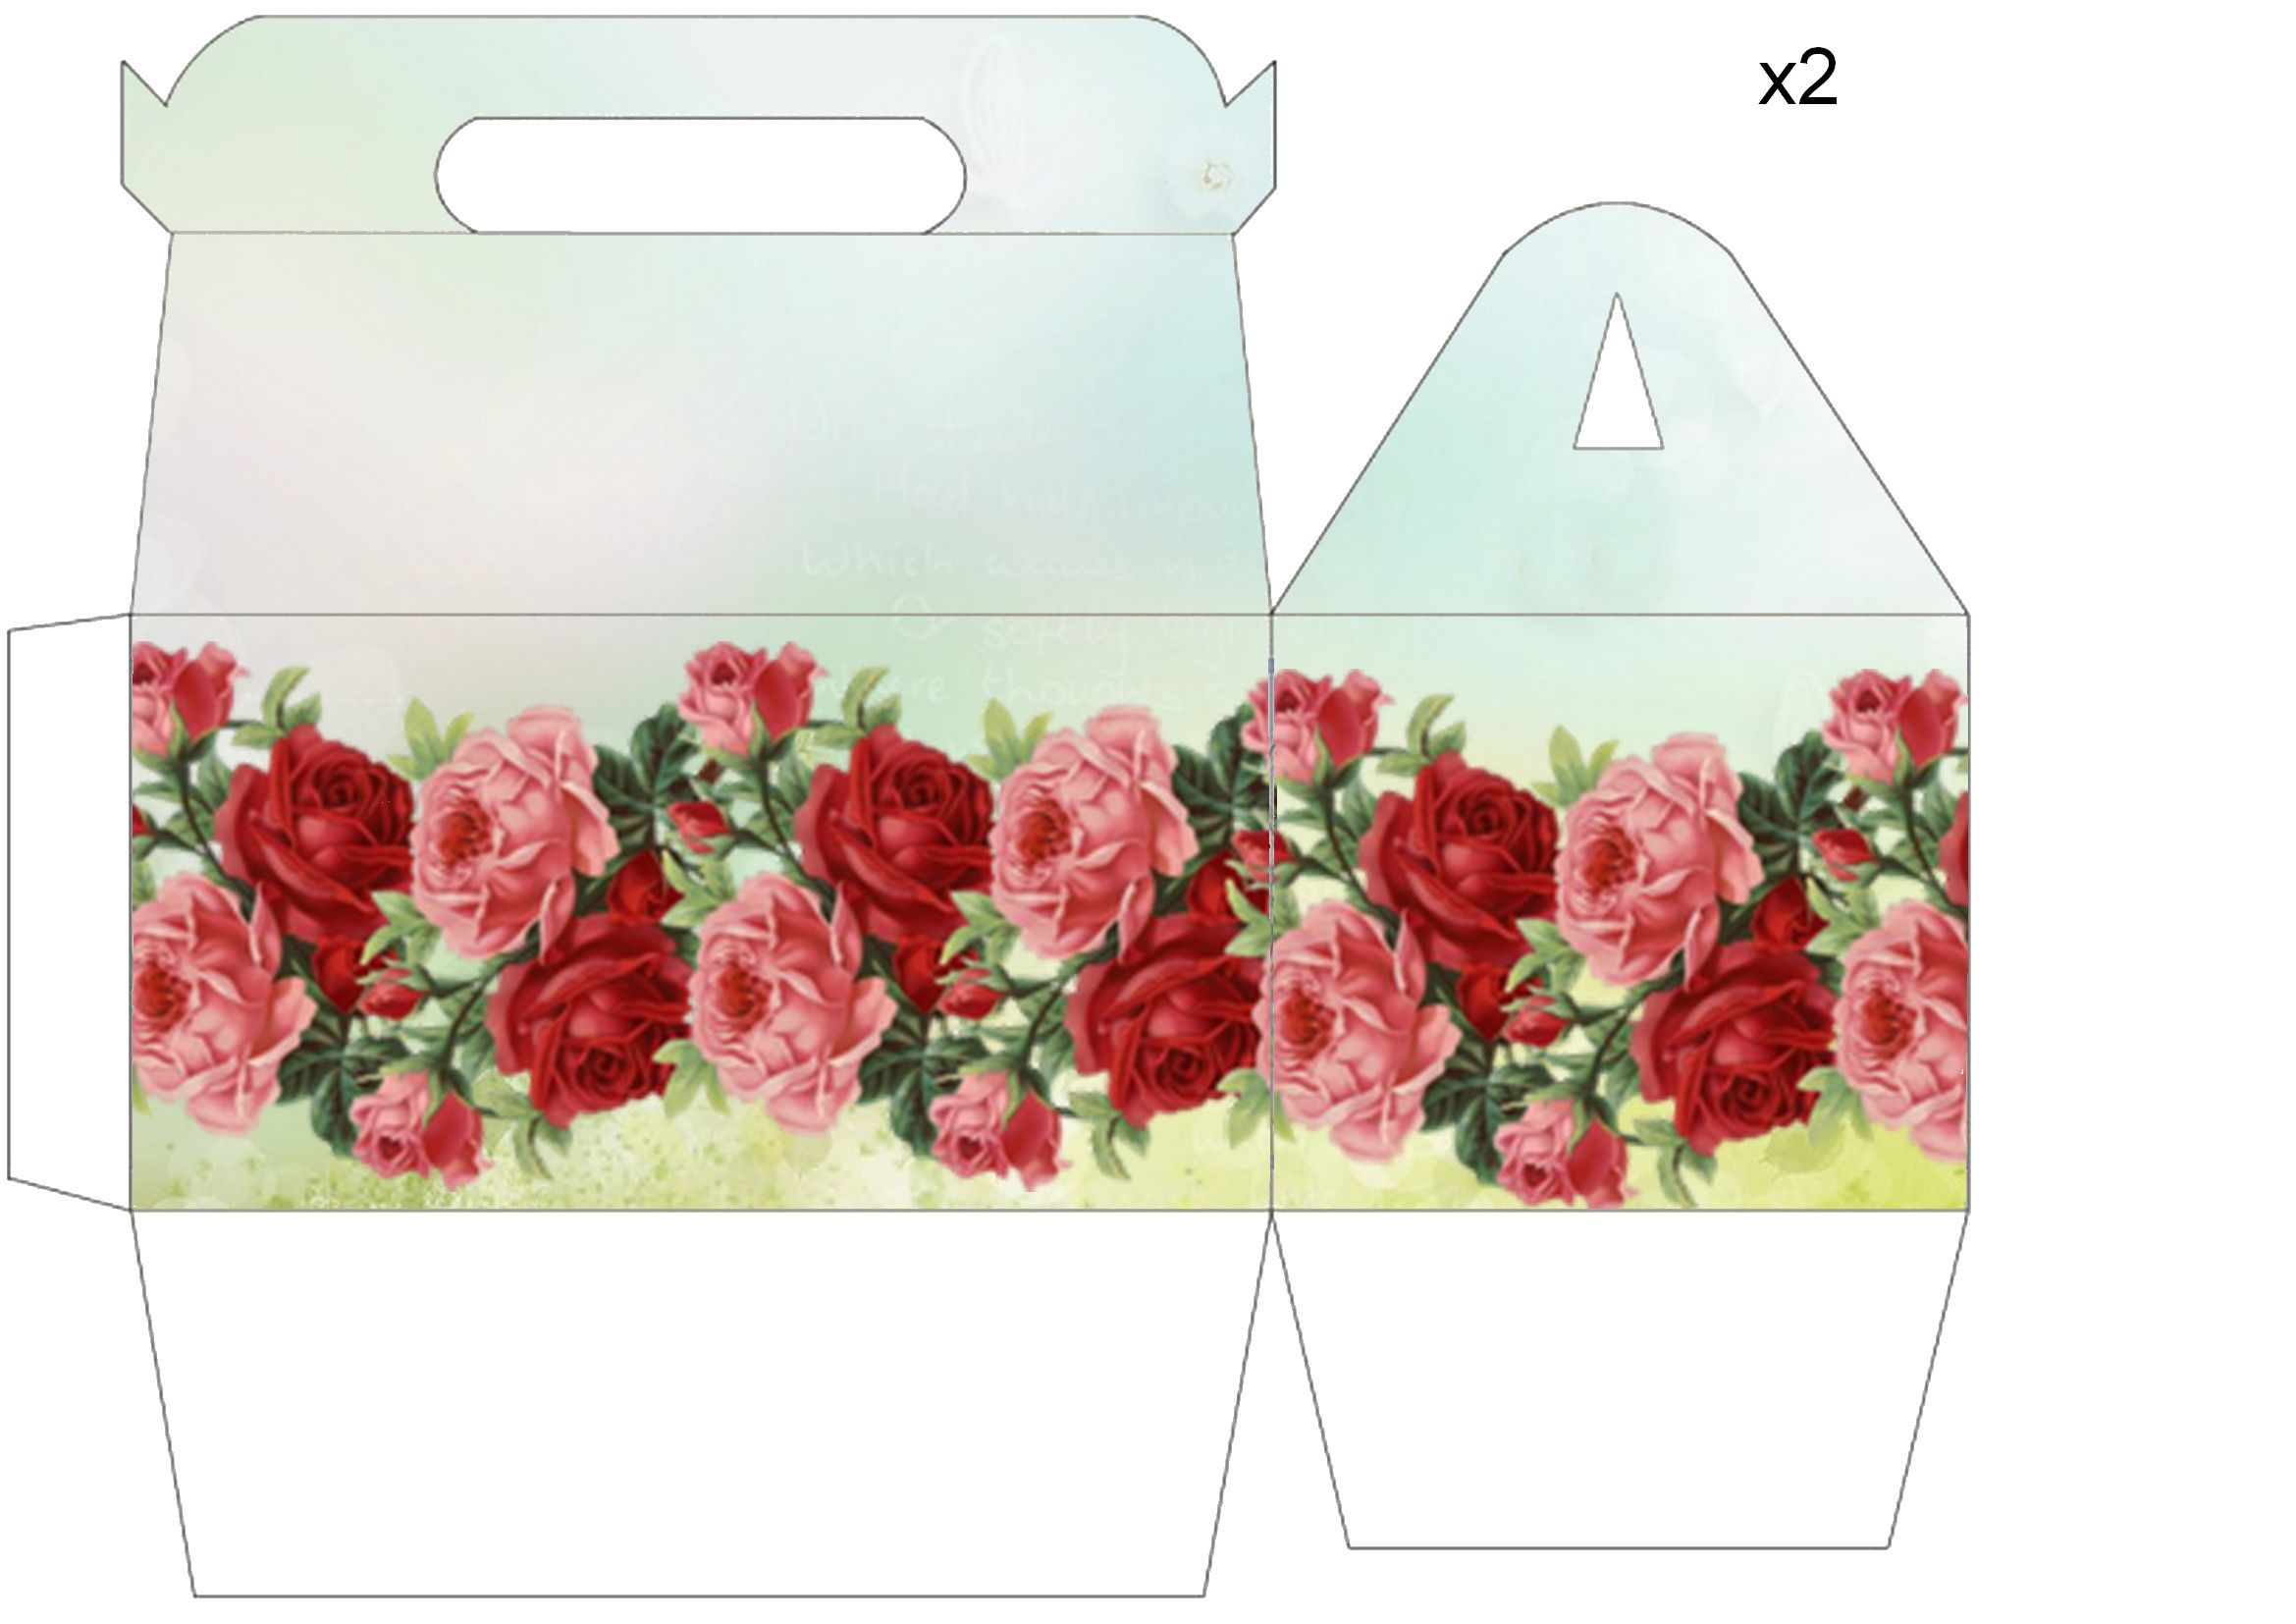 Pin by Cathie Cagle on Cricut - Boxes & Bags | Printable box